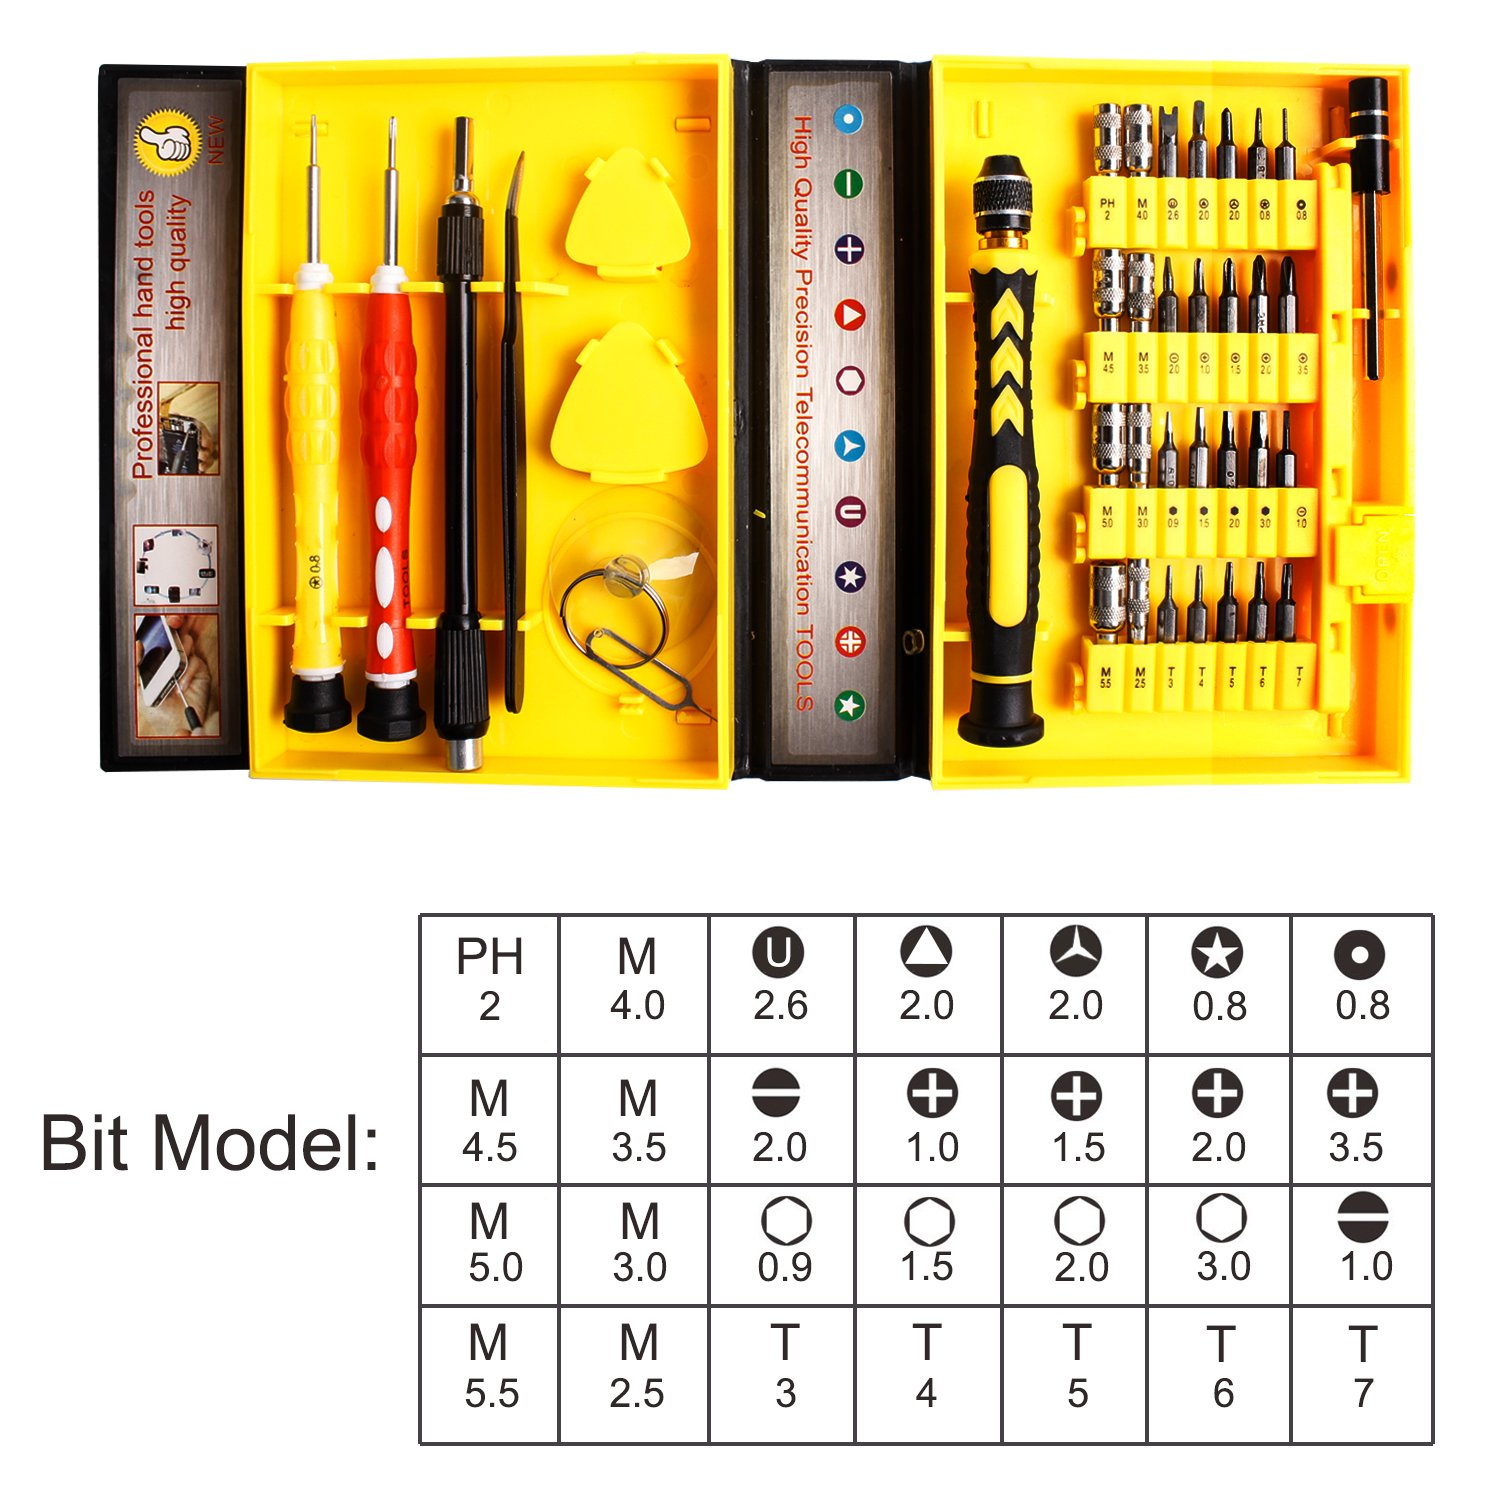 Yougai 38-Piece Precision Computer Repair Tool Kit for iPad,iPhone,PC,Watch,Samsung and Other Smartphone Tablet Computer Electronic Devices (Yellow-38 in 1) by Yougai (Image #3)